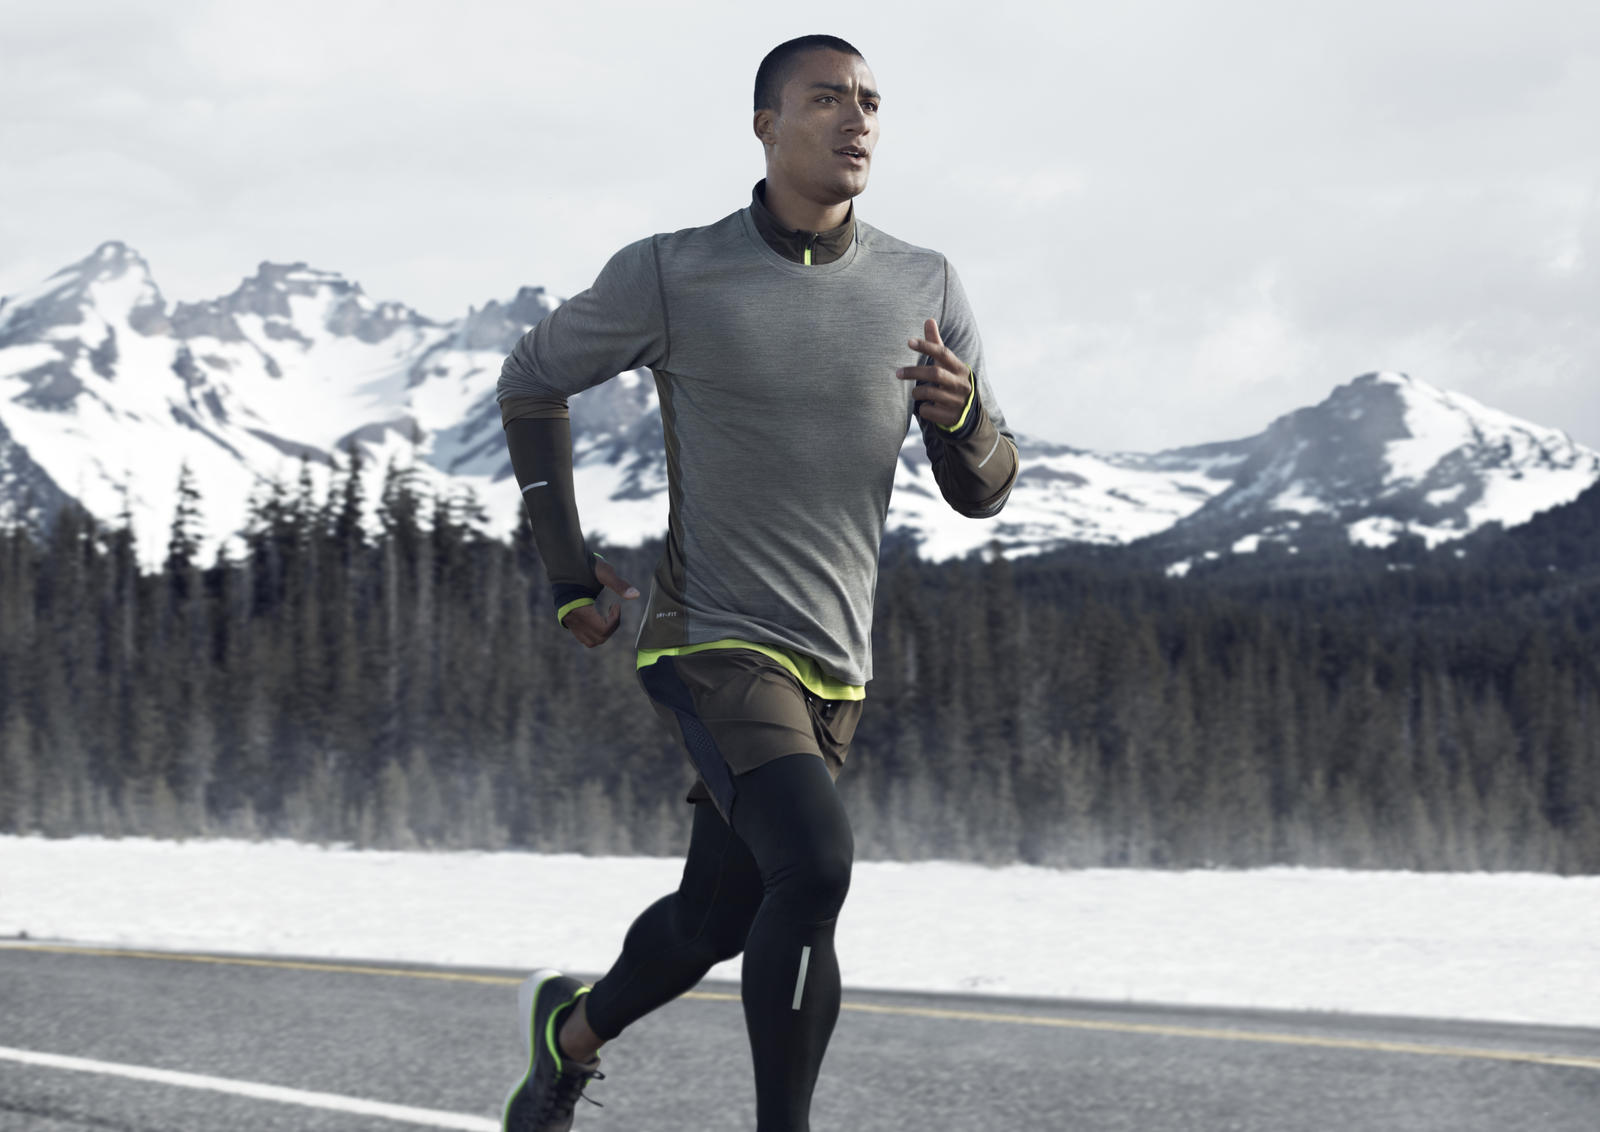 Offical Site: Shop for men's running clothing from ASICS®. FREE SHIPPING available in the US.